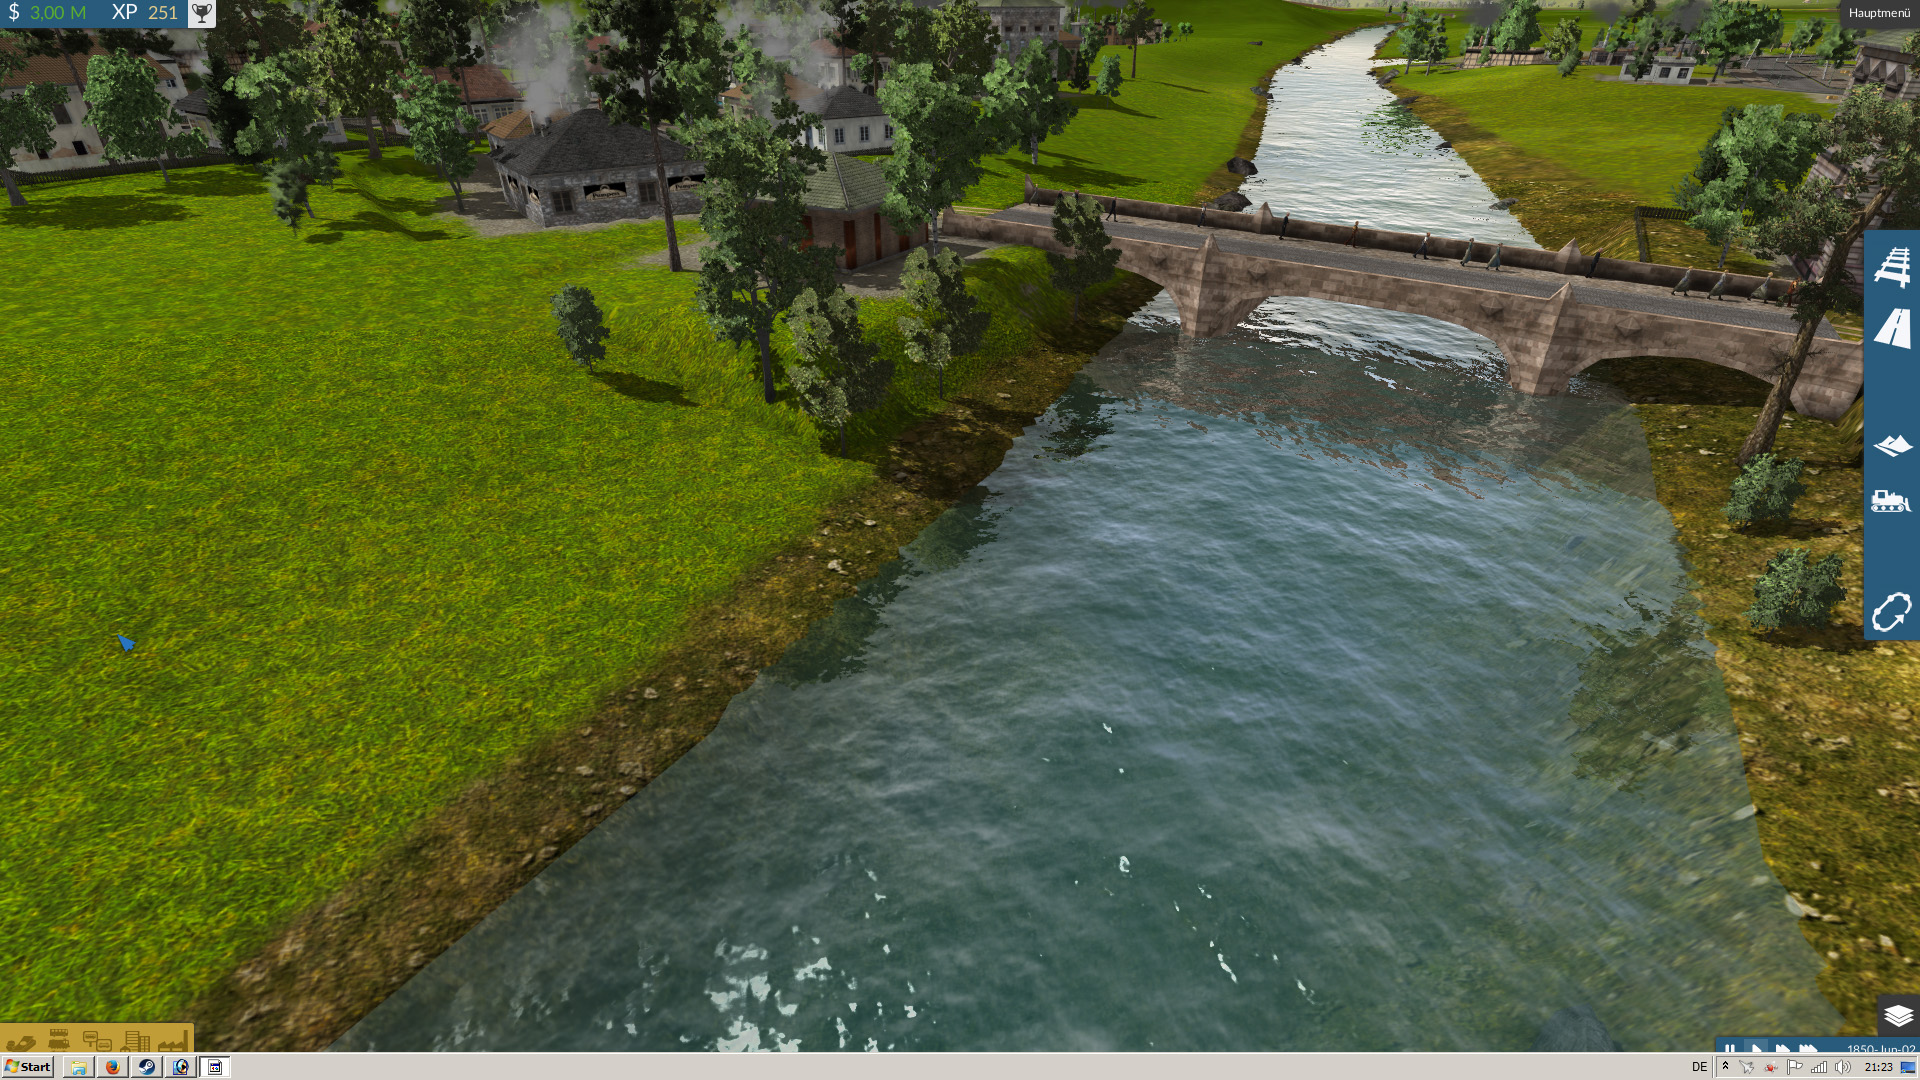 Texture Upgrade for grass, riverbed and crop fields - Downloads ...